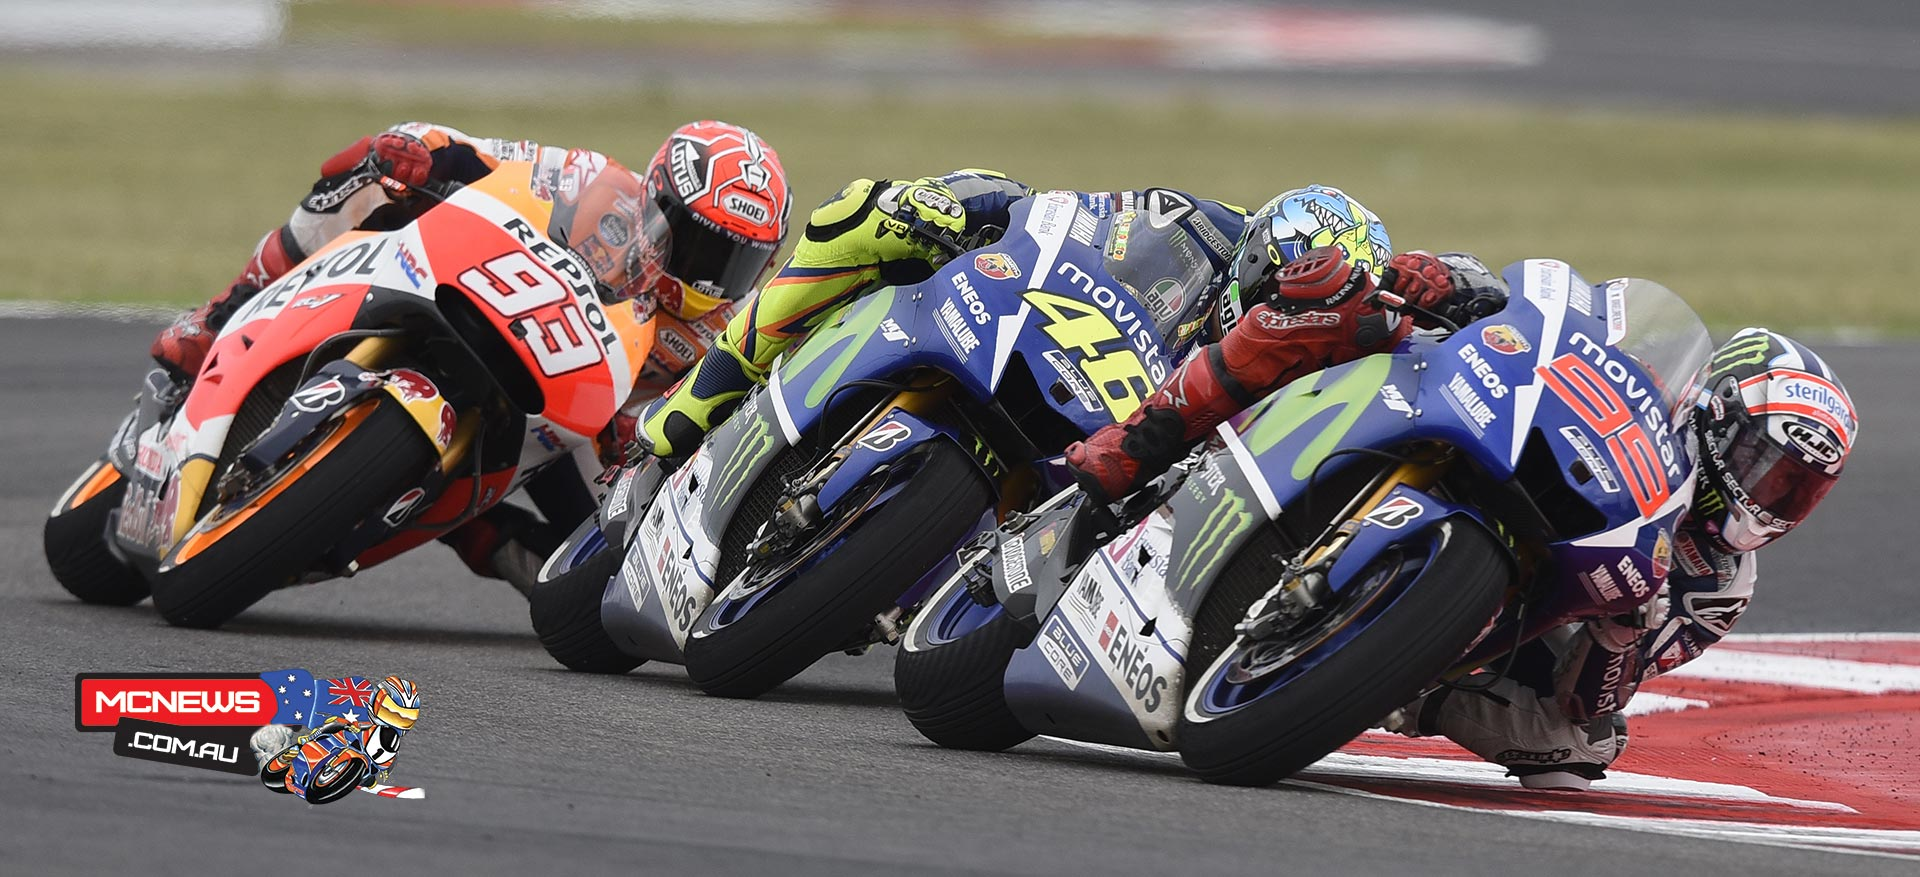 Motogp Title Down To The Wire At Valencia Mcnewscomau